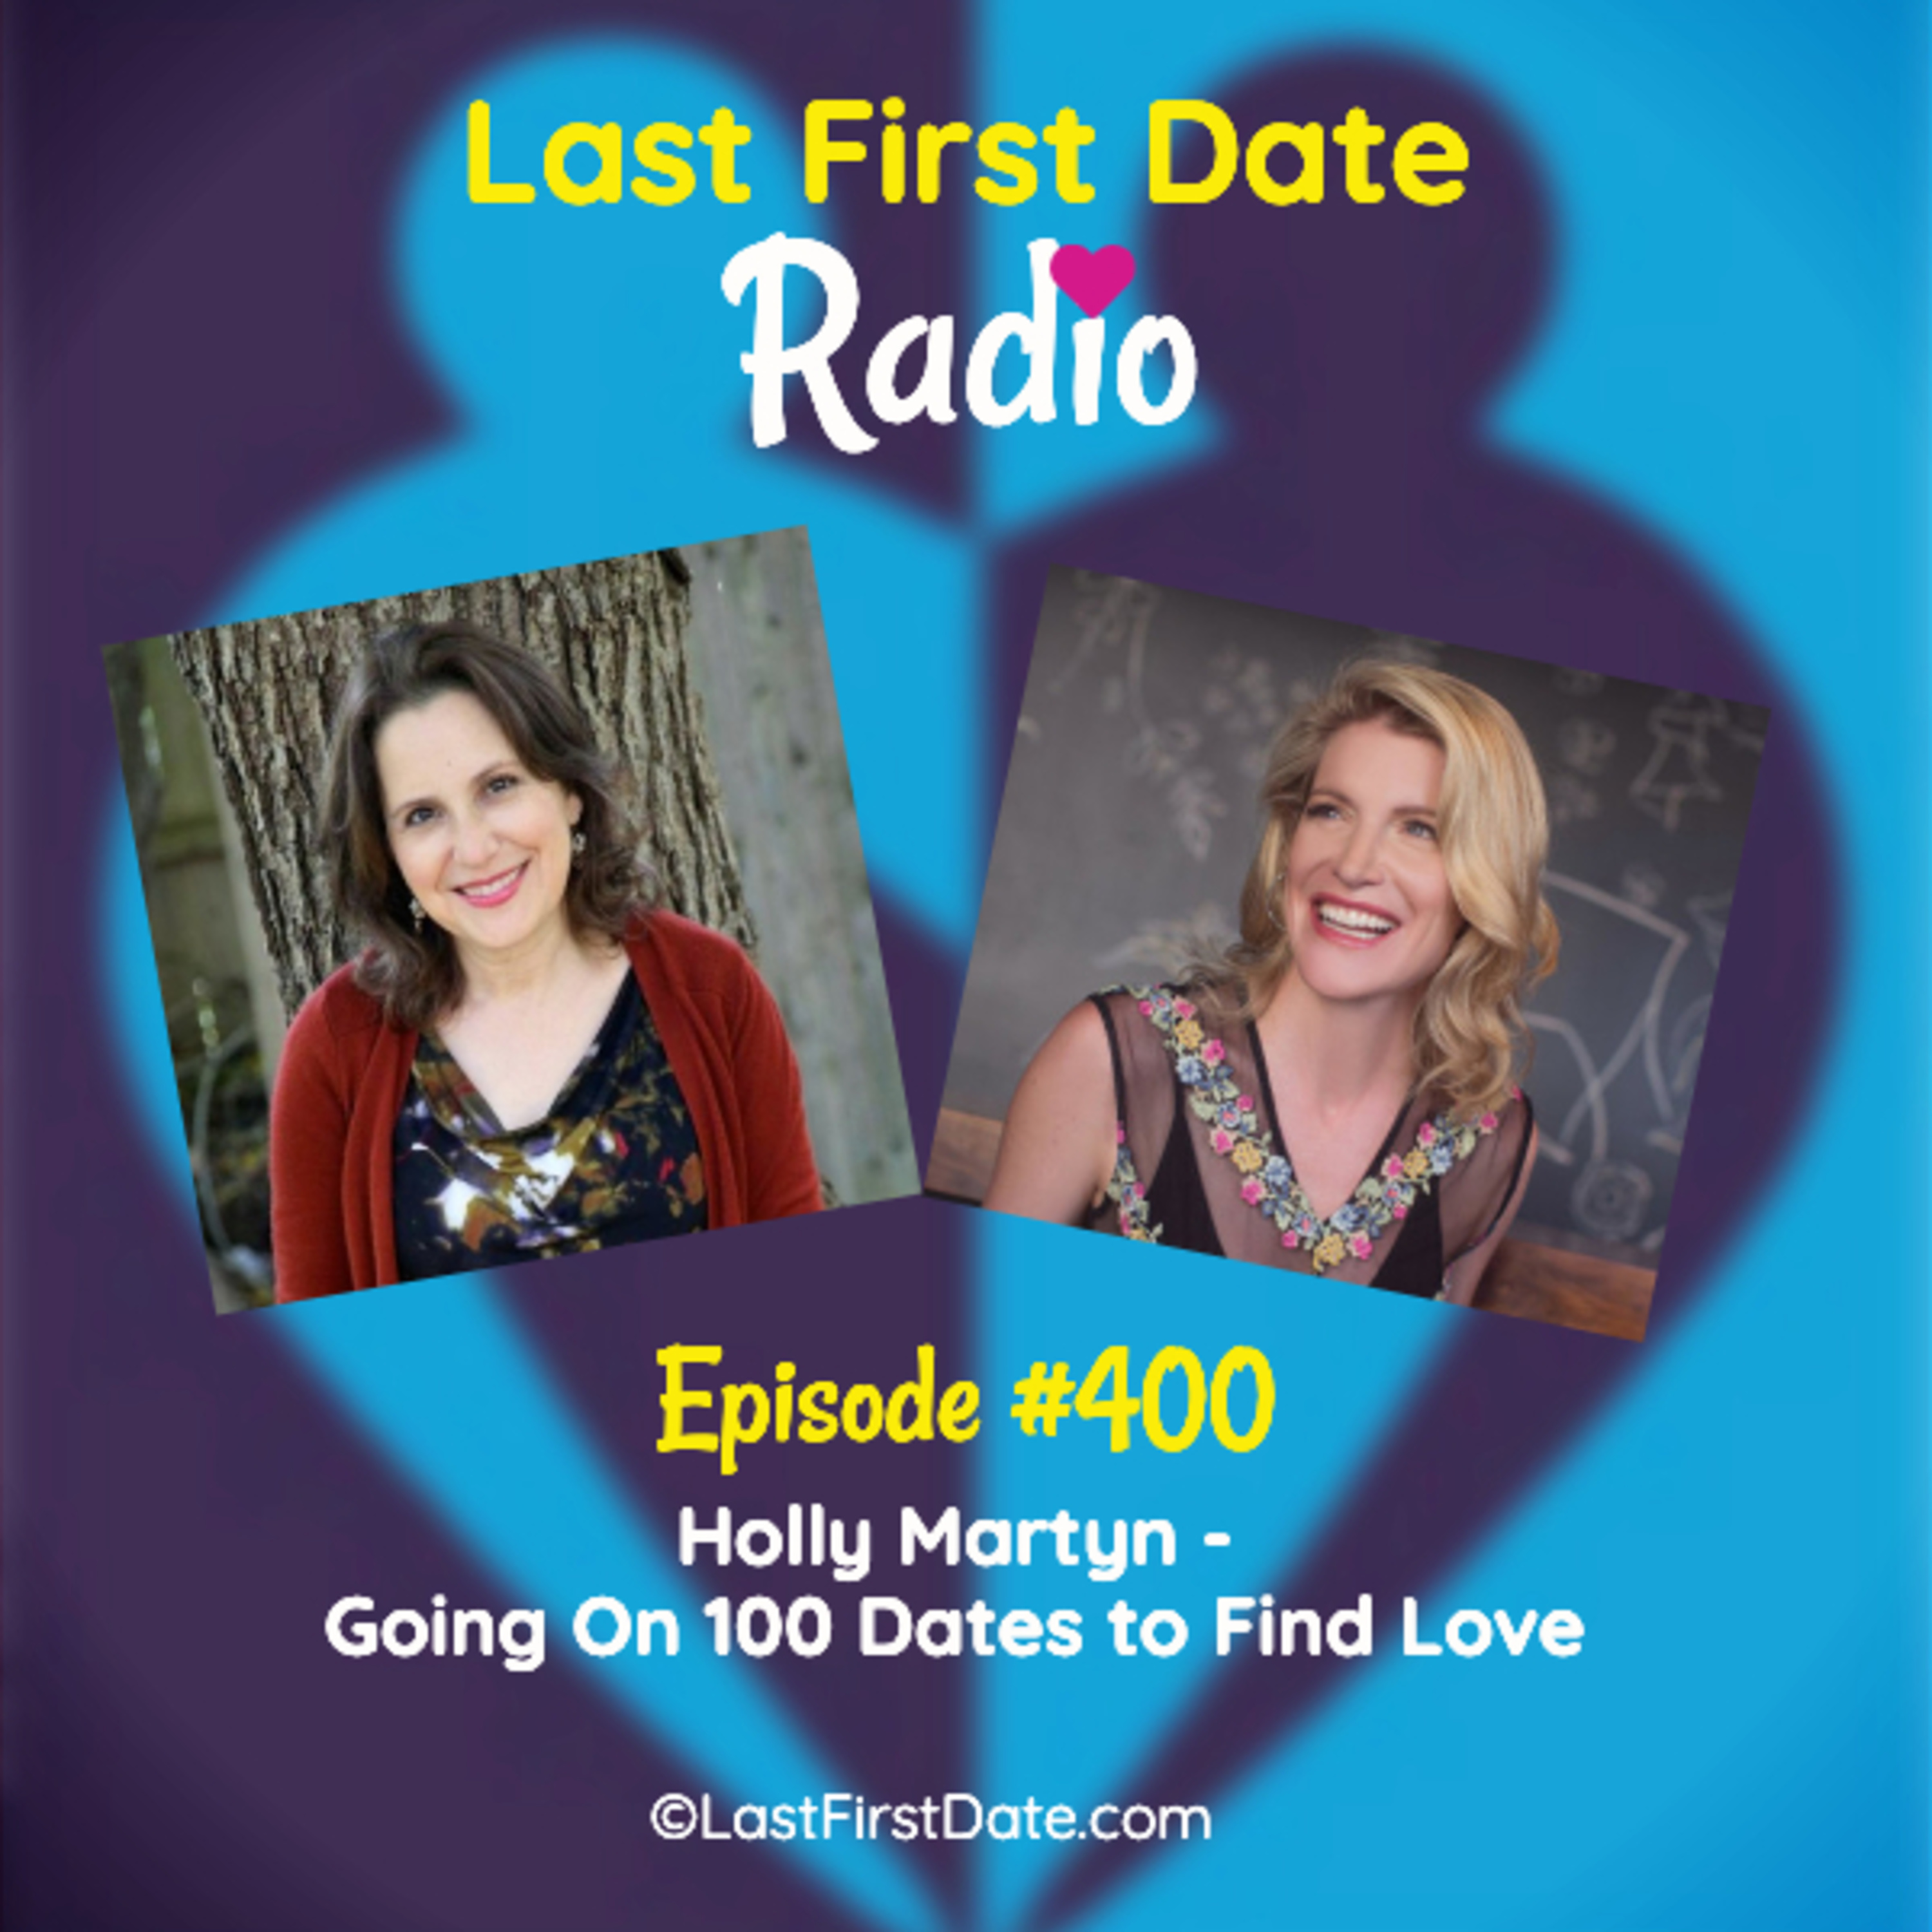 Last First Date Radio - EP 400: Holly Martyn - Going On 100 Dates to Find Love